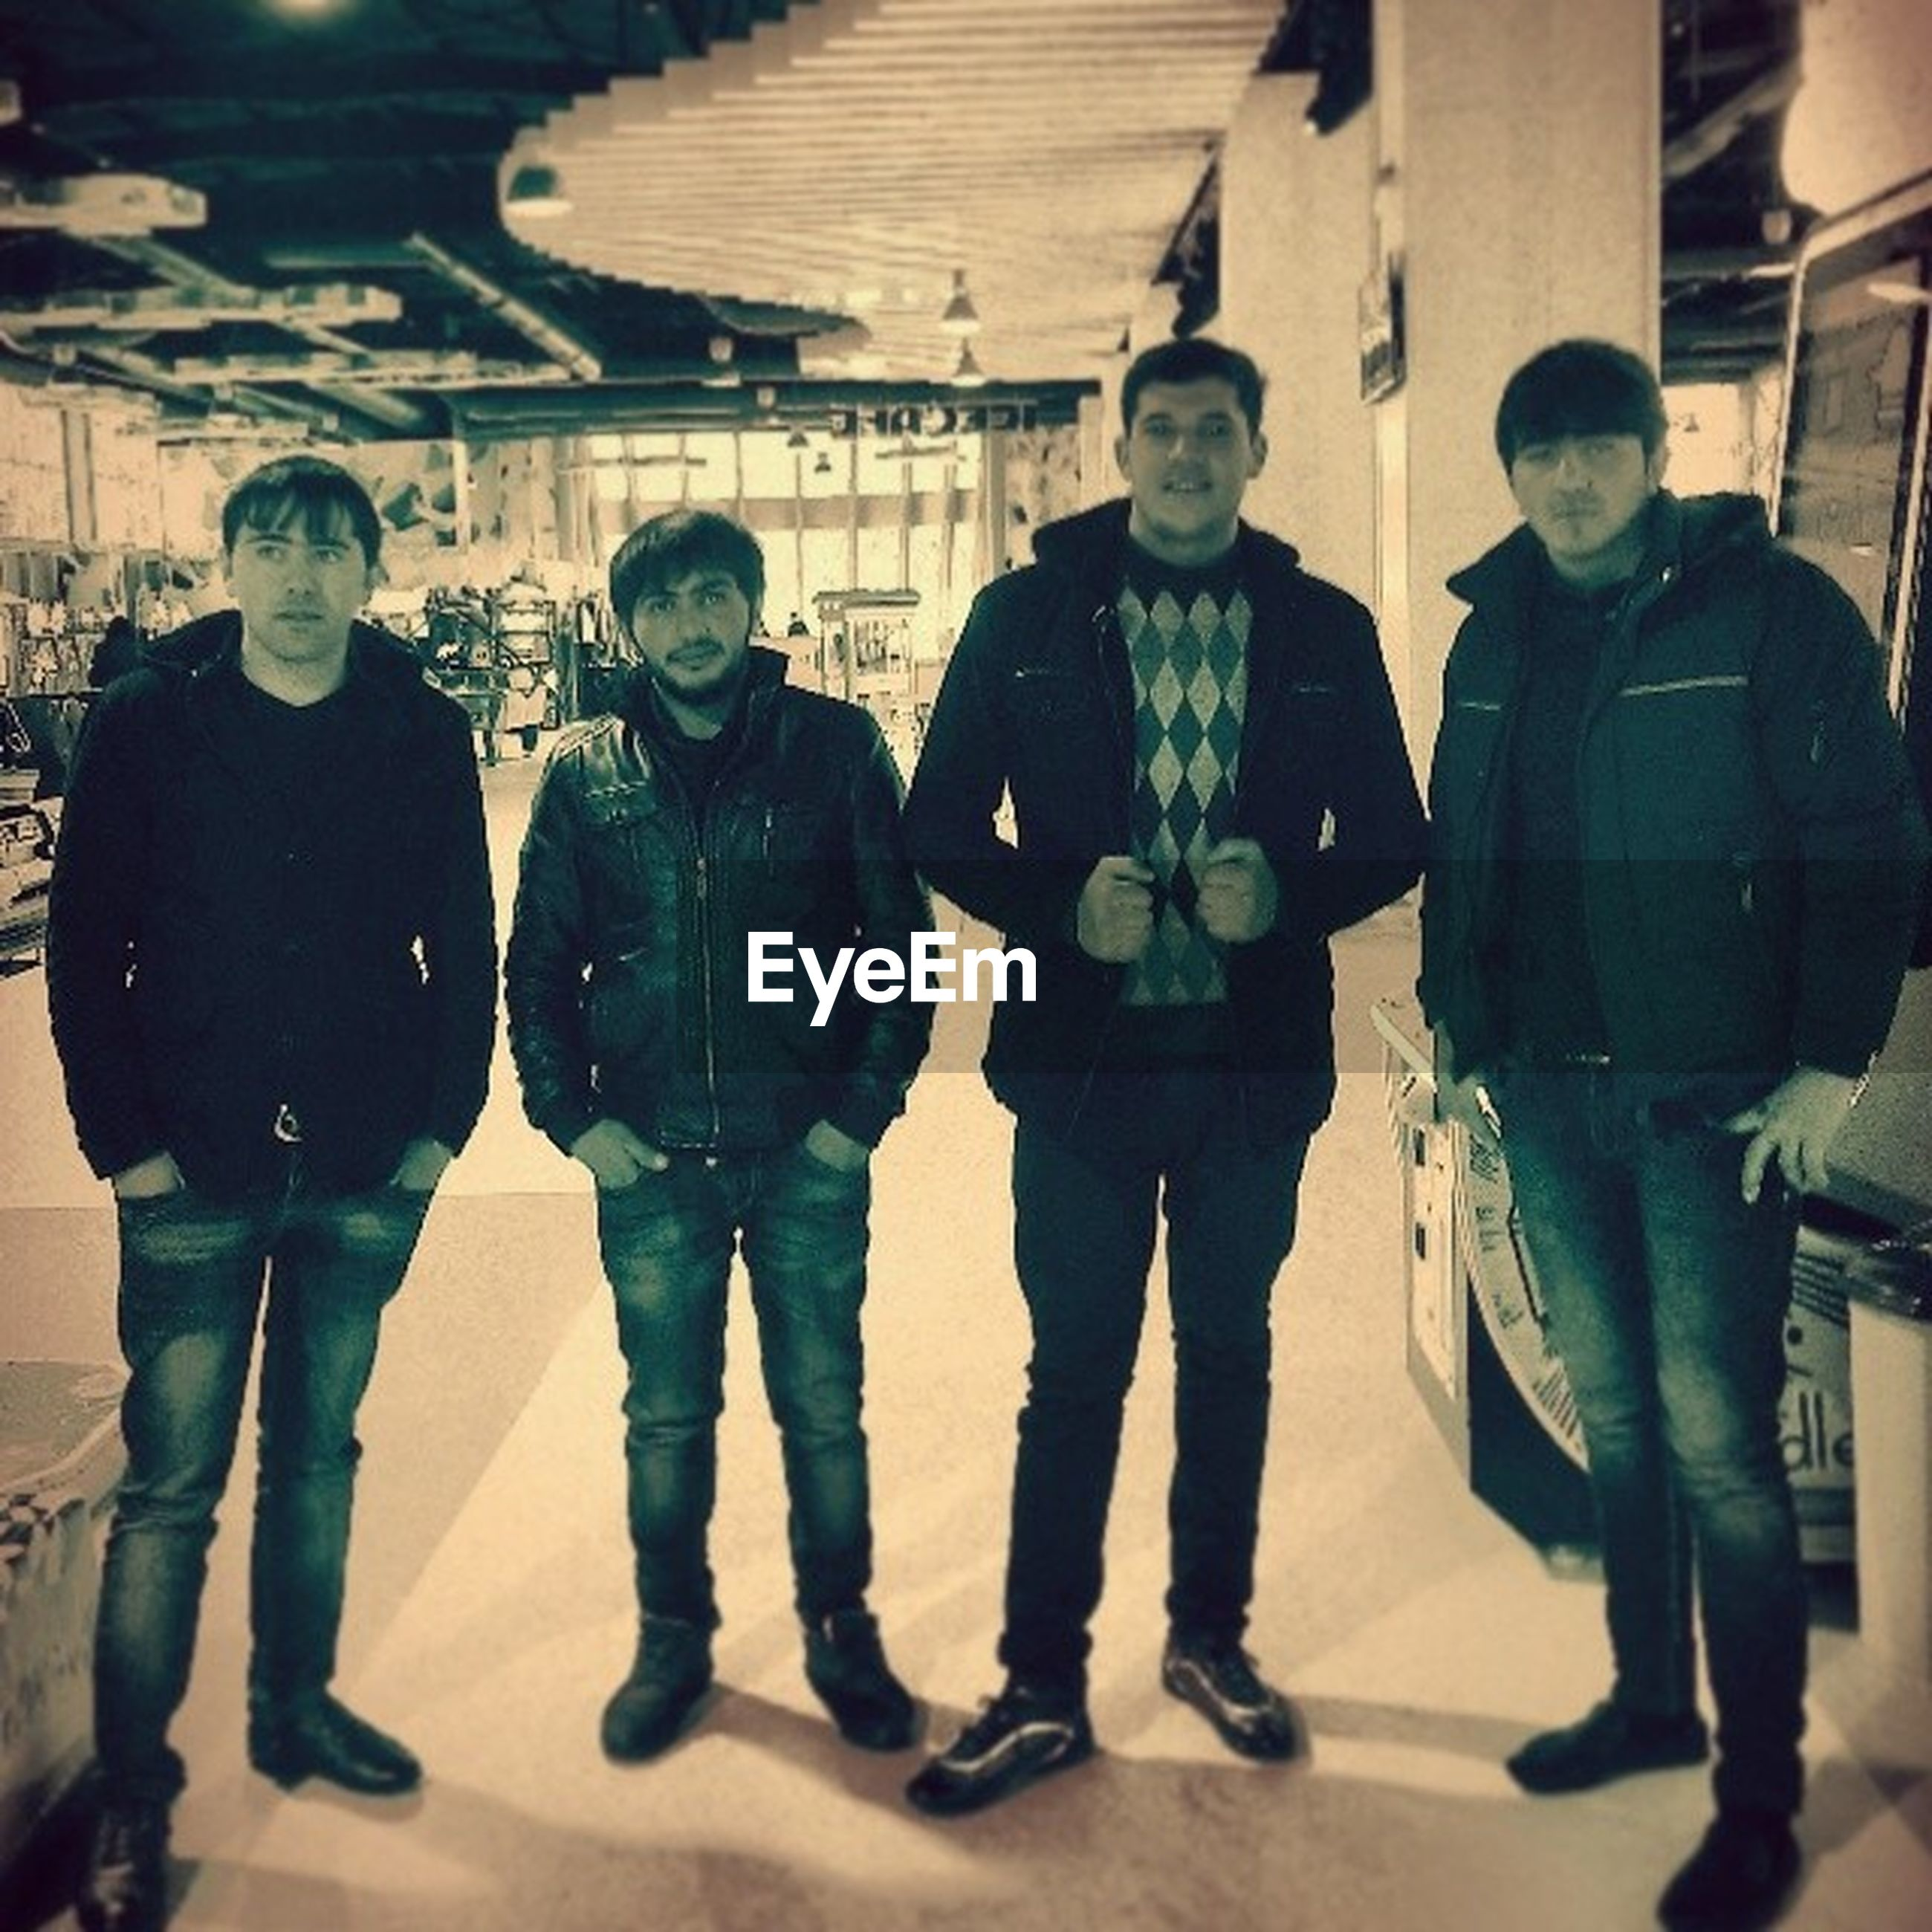 lifestyles, standing, casual clothing, full length, men, leisure activity, togetherness, indoors, walking, front view, young men, rear view, warm clothing, person, friendship, bonding, architecture, day